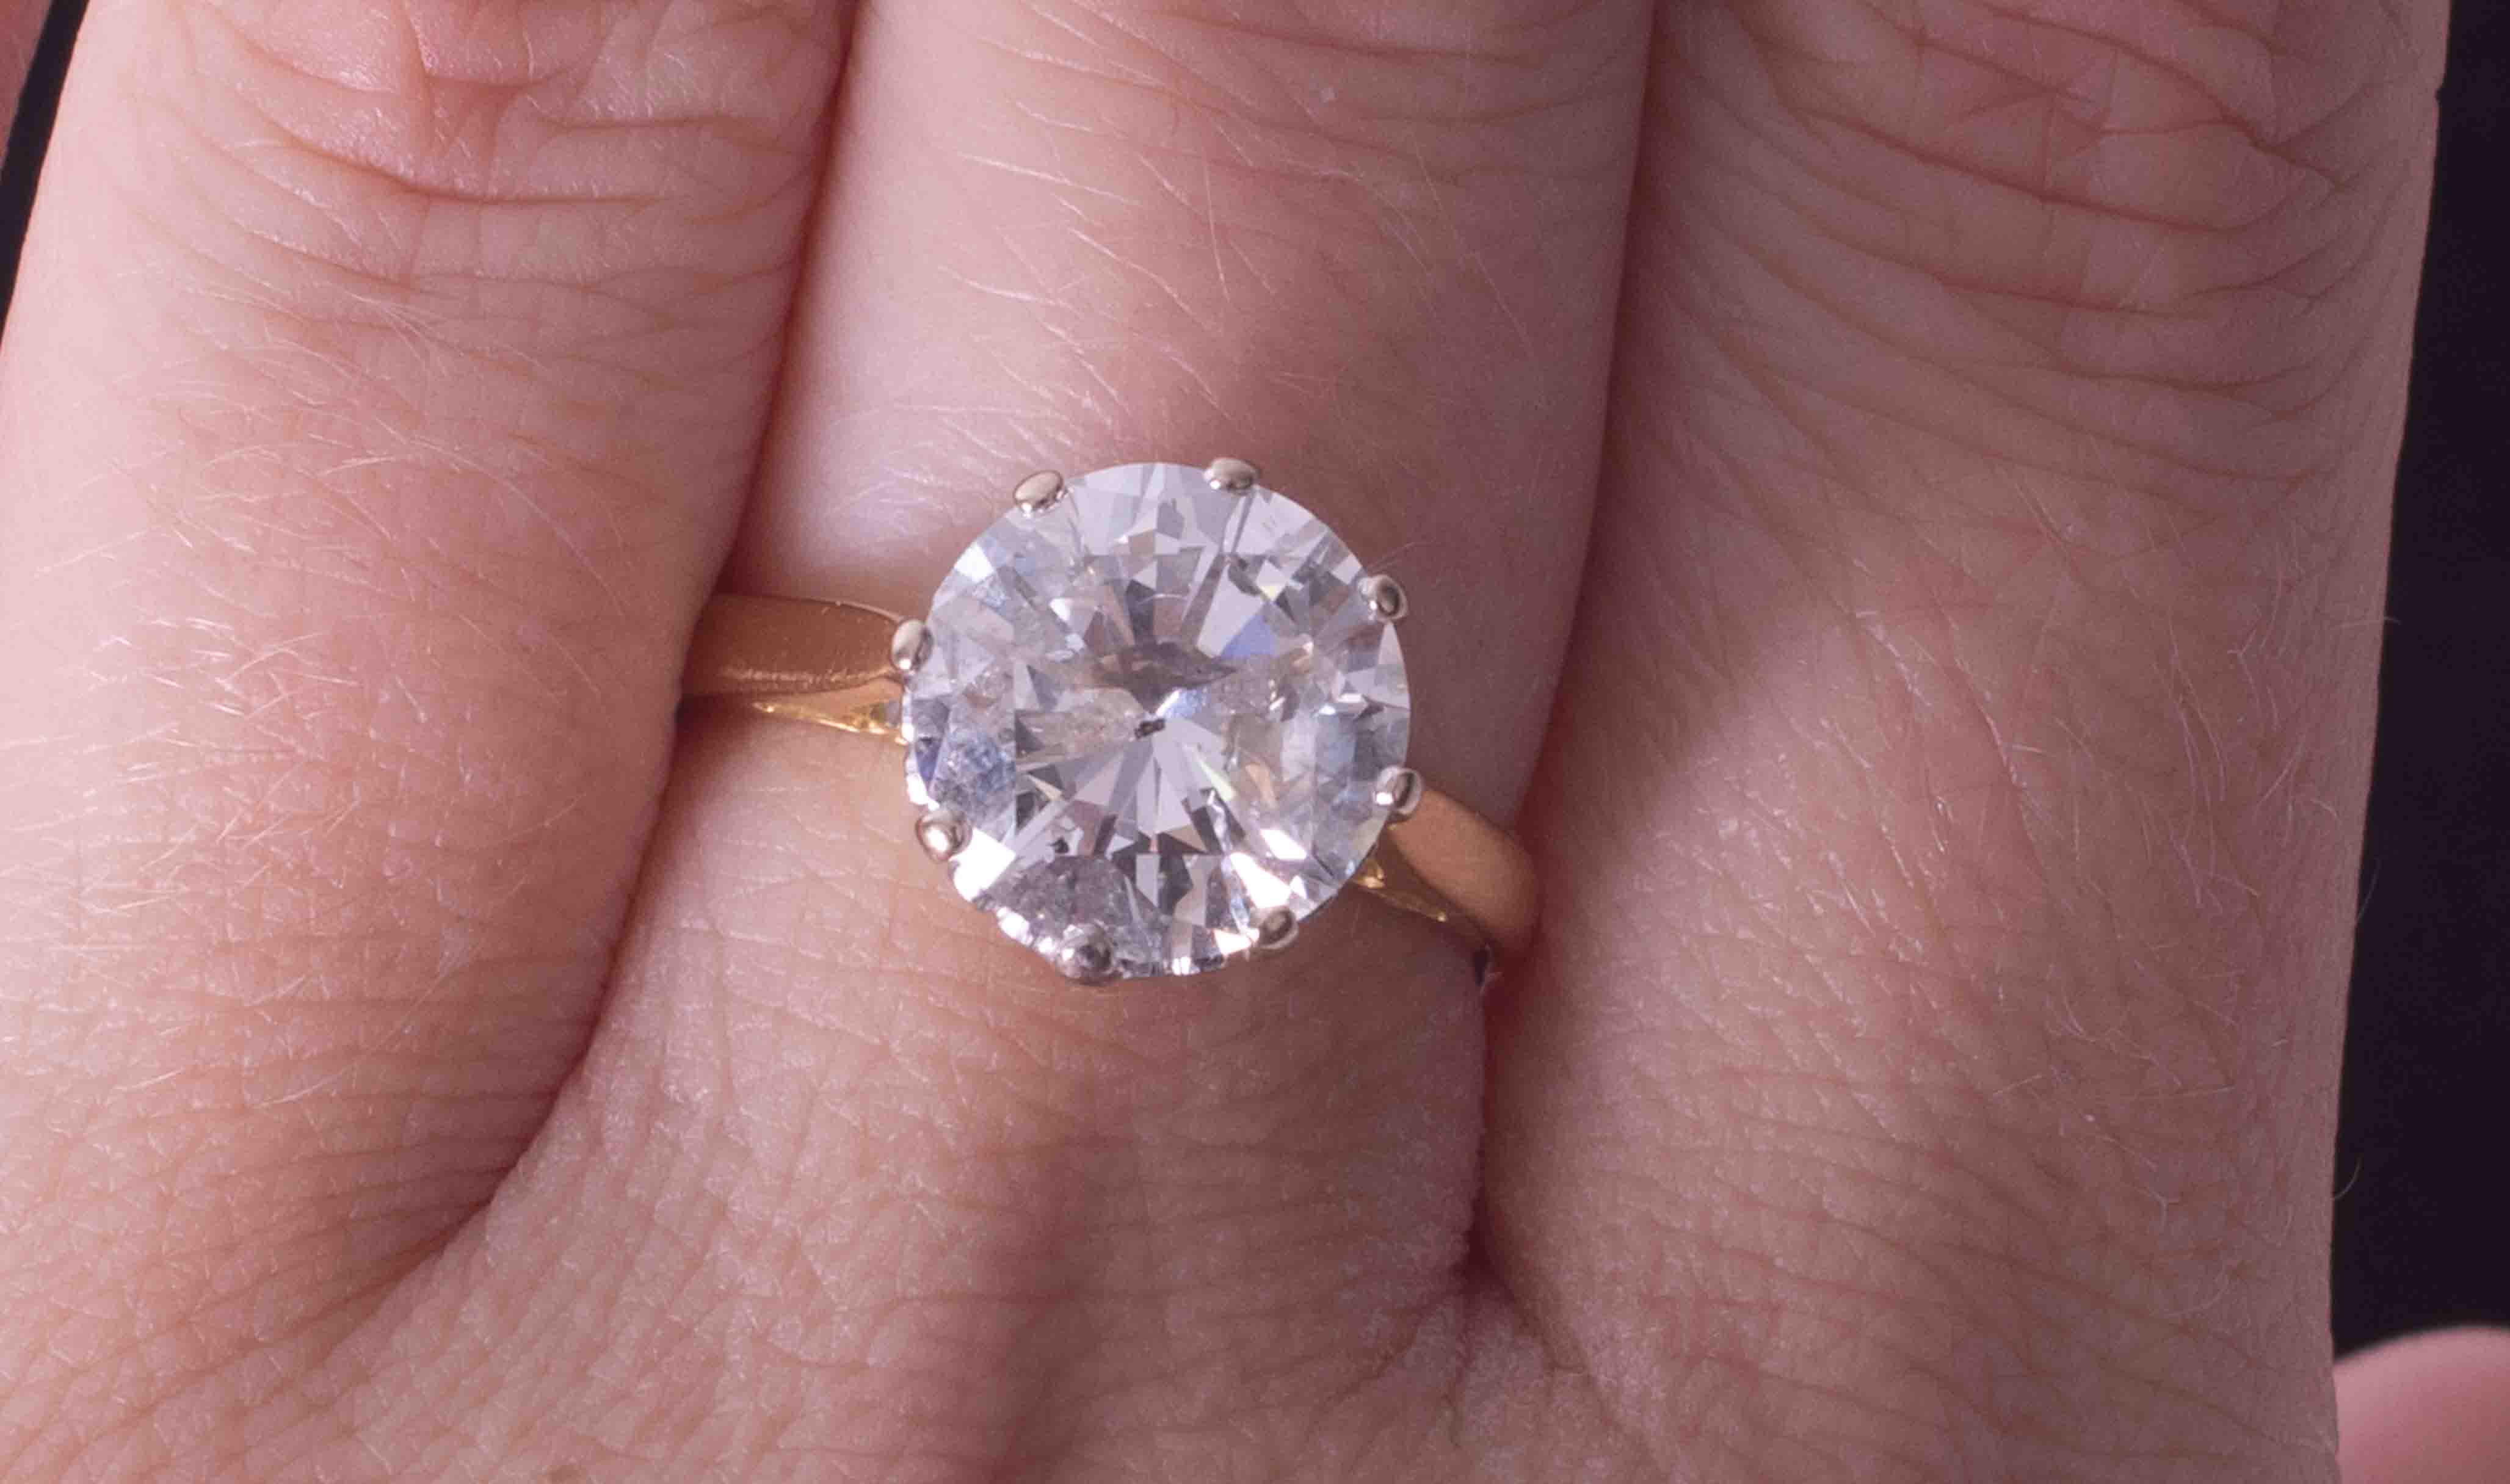 An impressive 18ct yellow & white gold diamond solitaire ring set with approx. 4.00 carats of - Image 4 of 6